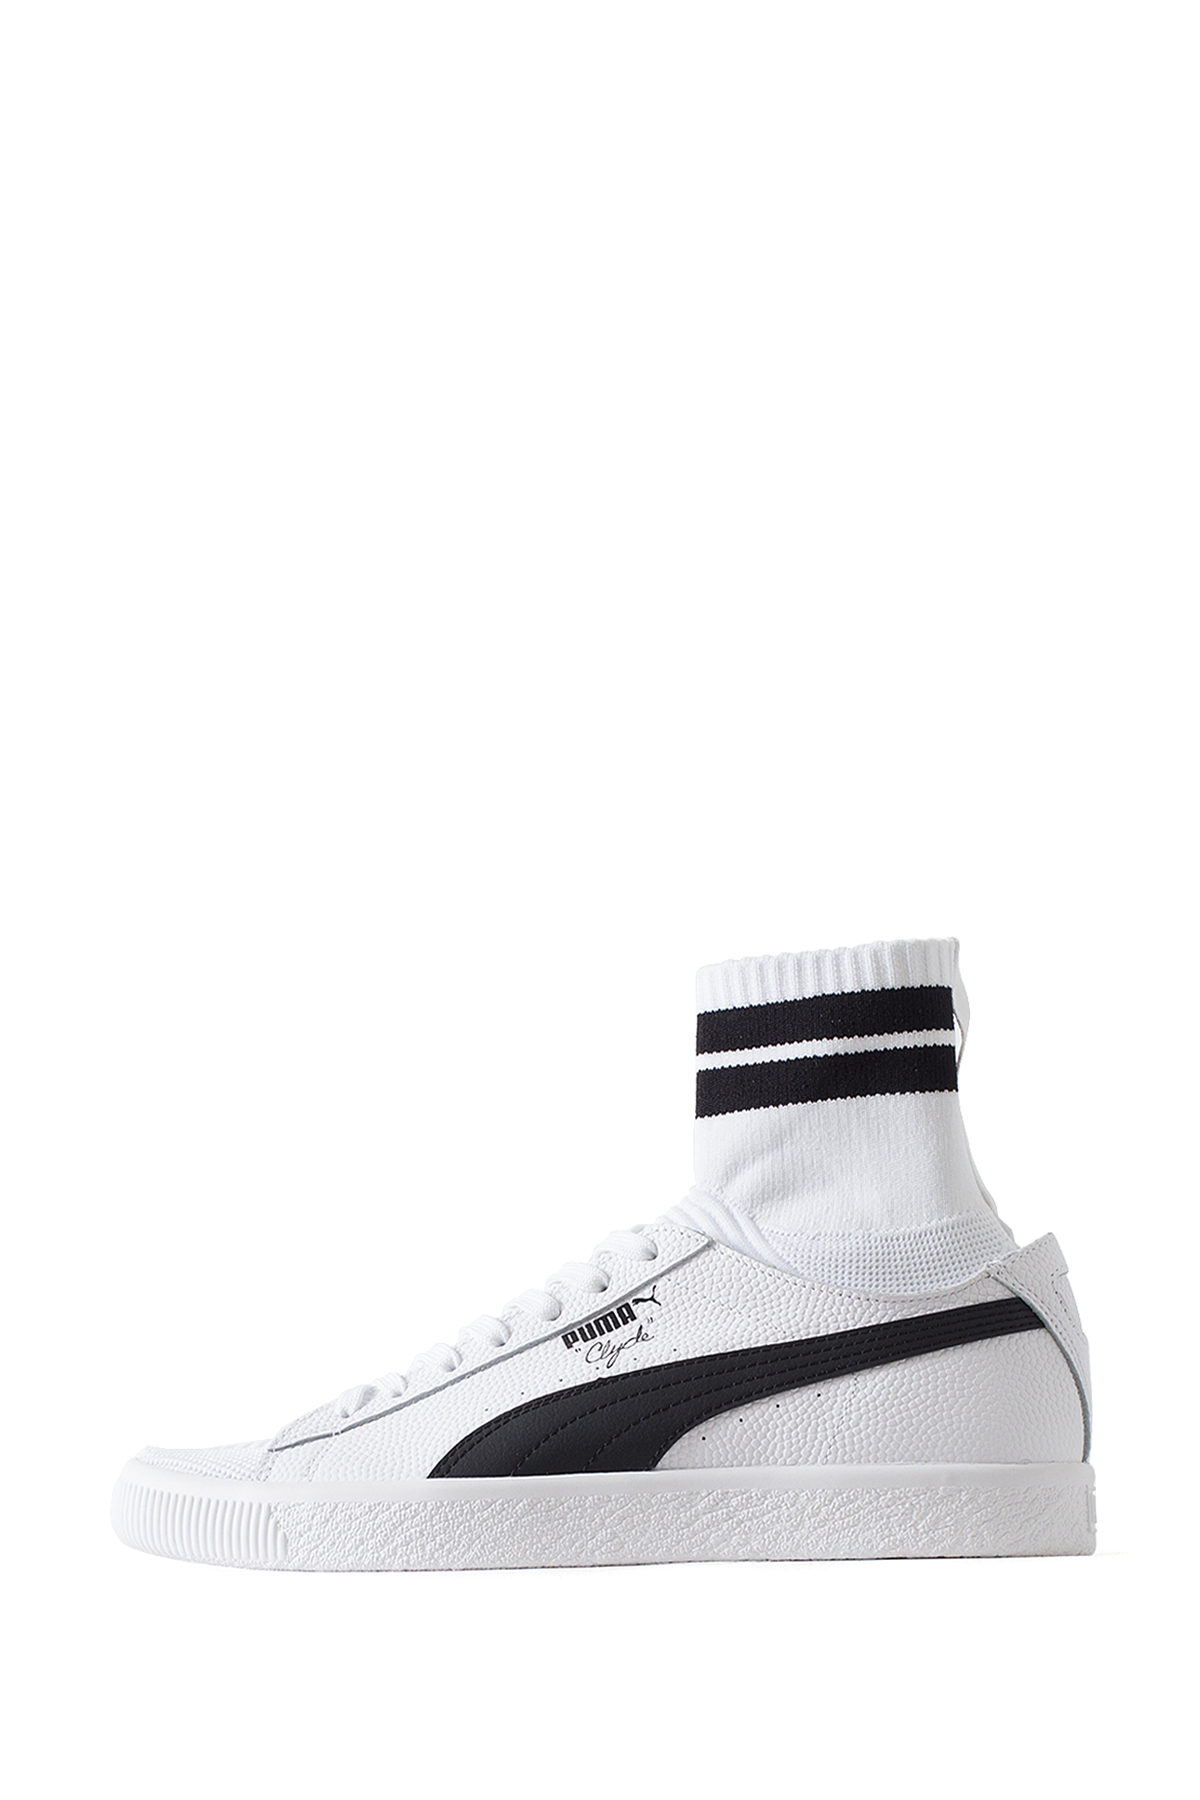 PUMA : Clyde Sock NYC (White / Black)